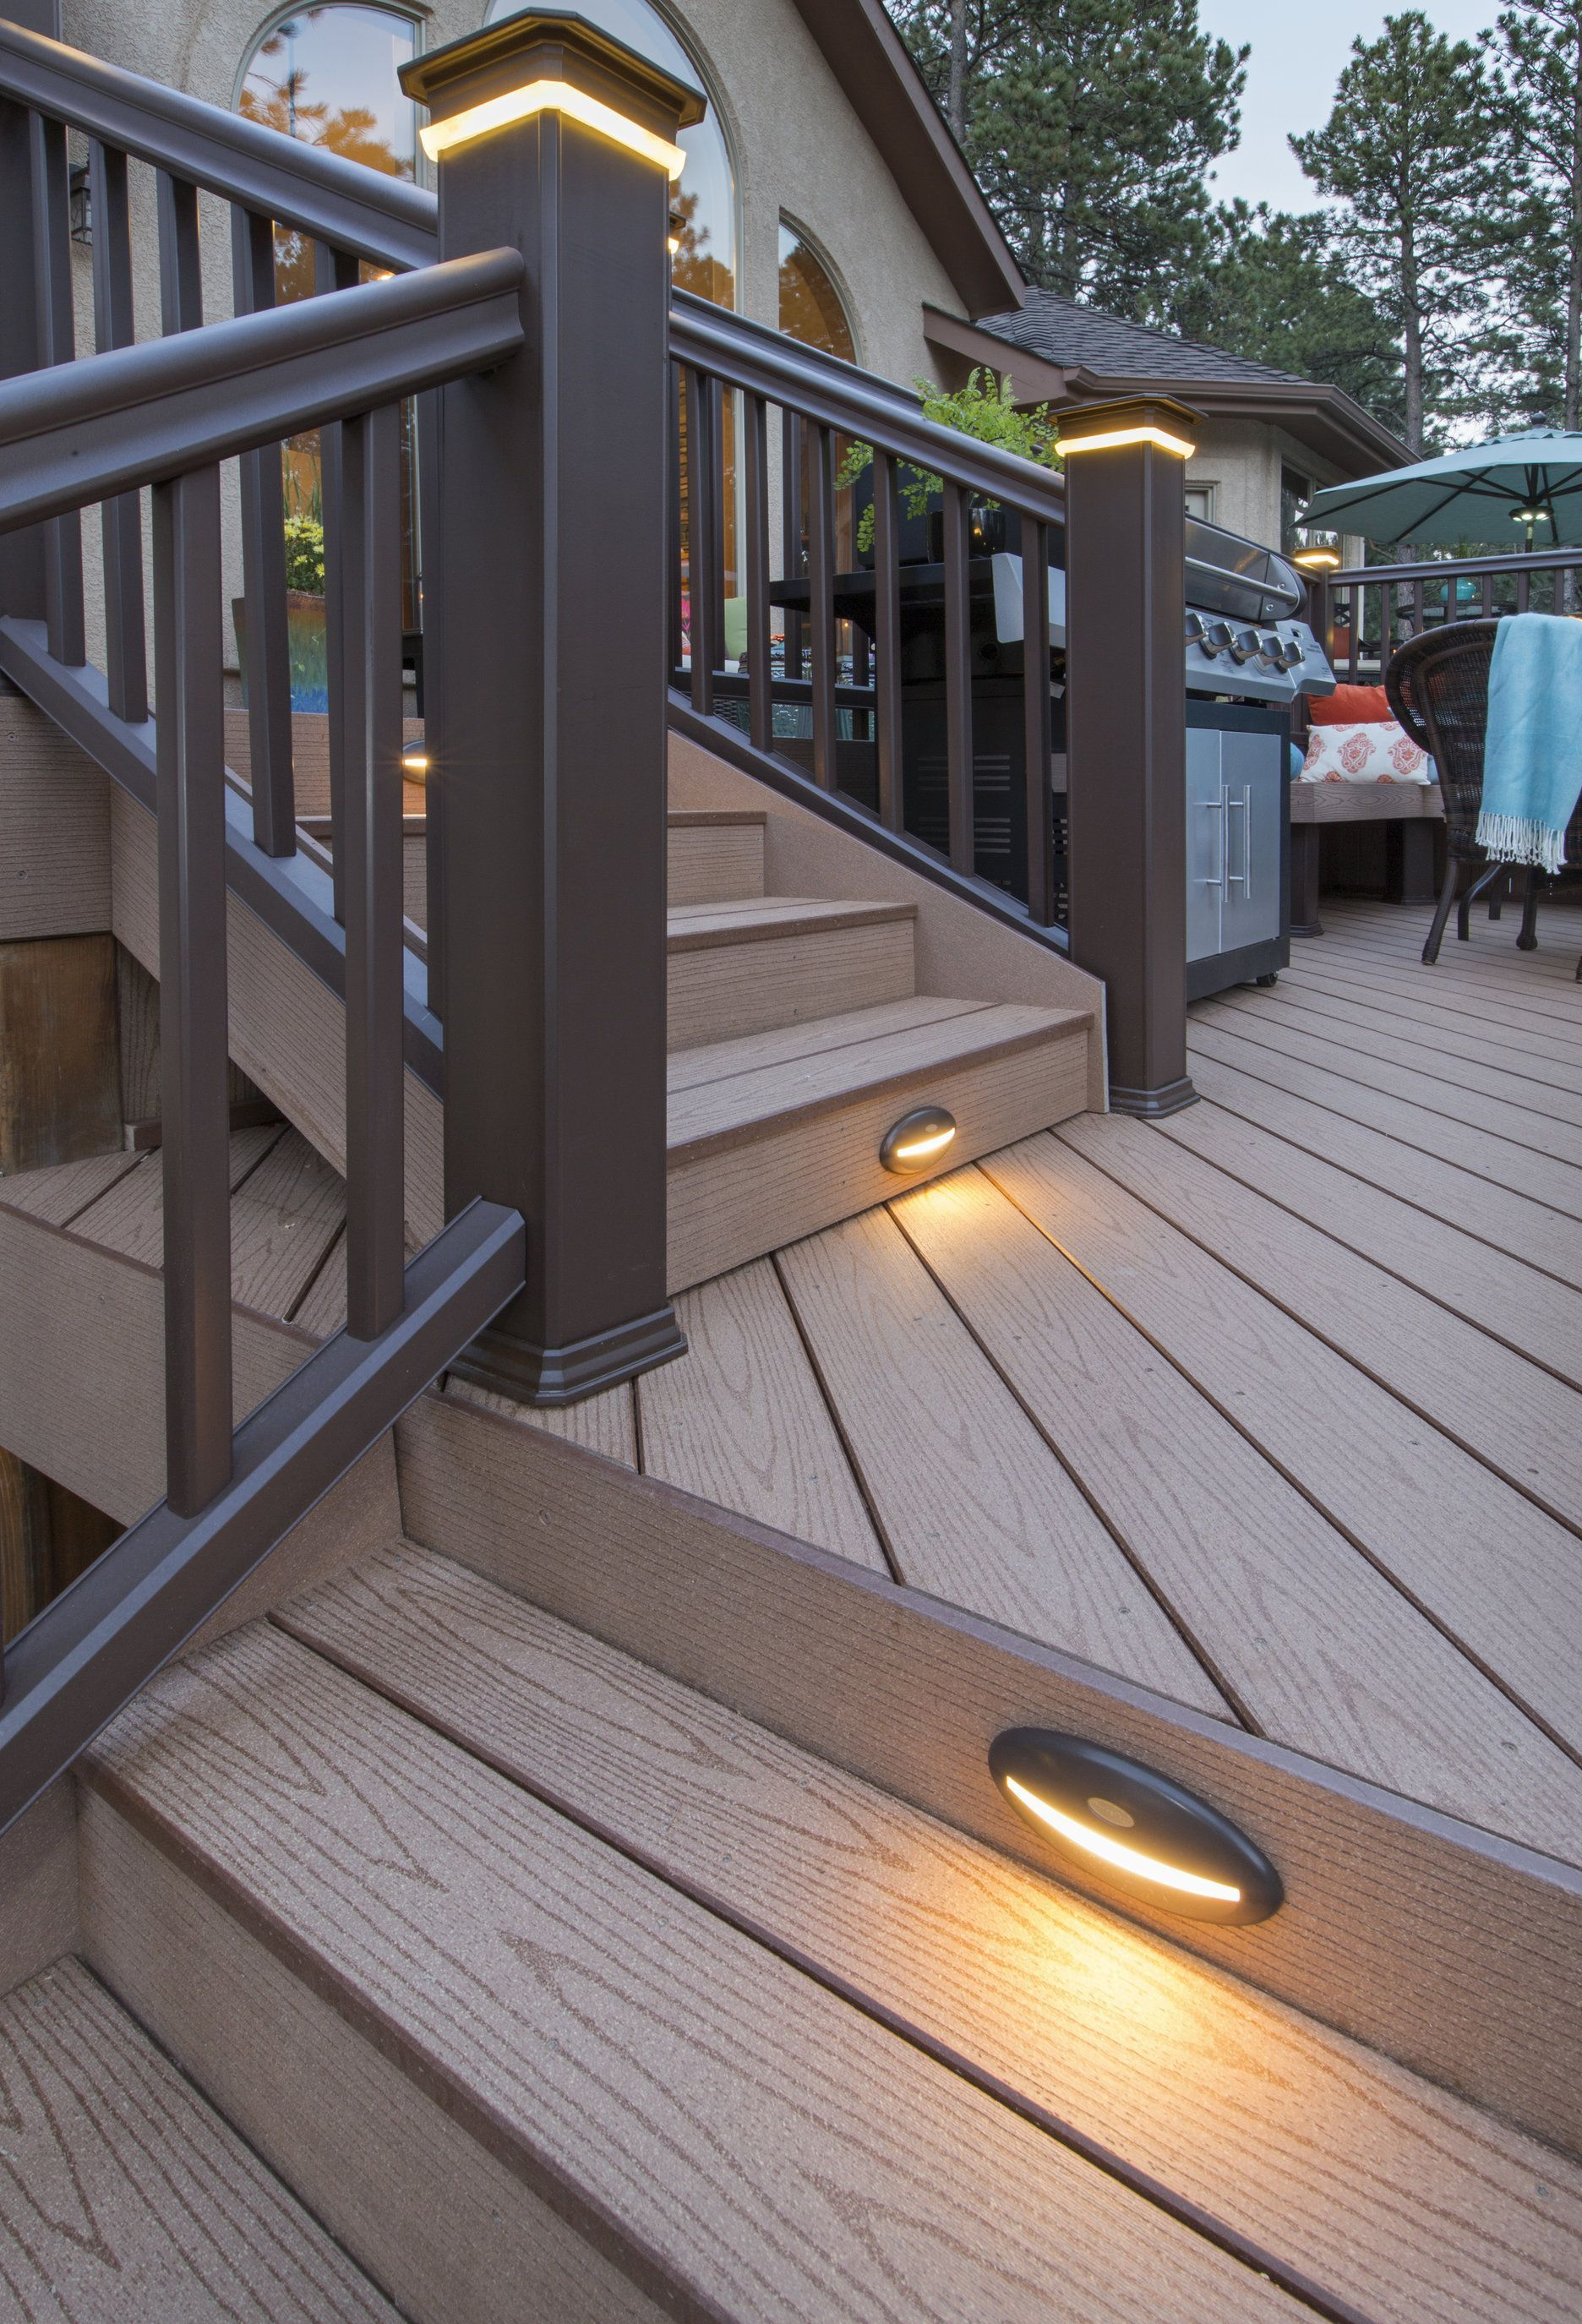 Lighting Products For Decks Porches Railings Timbertech Deck Lighting Building A Deck Cool Deck